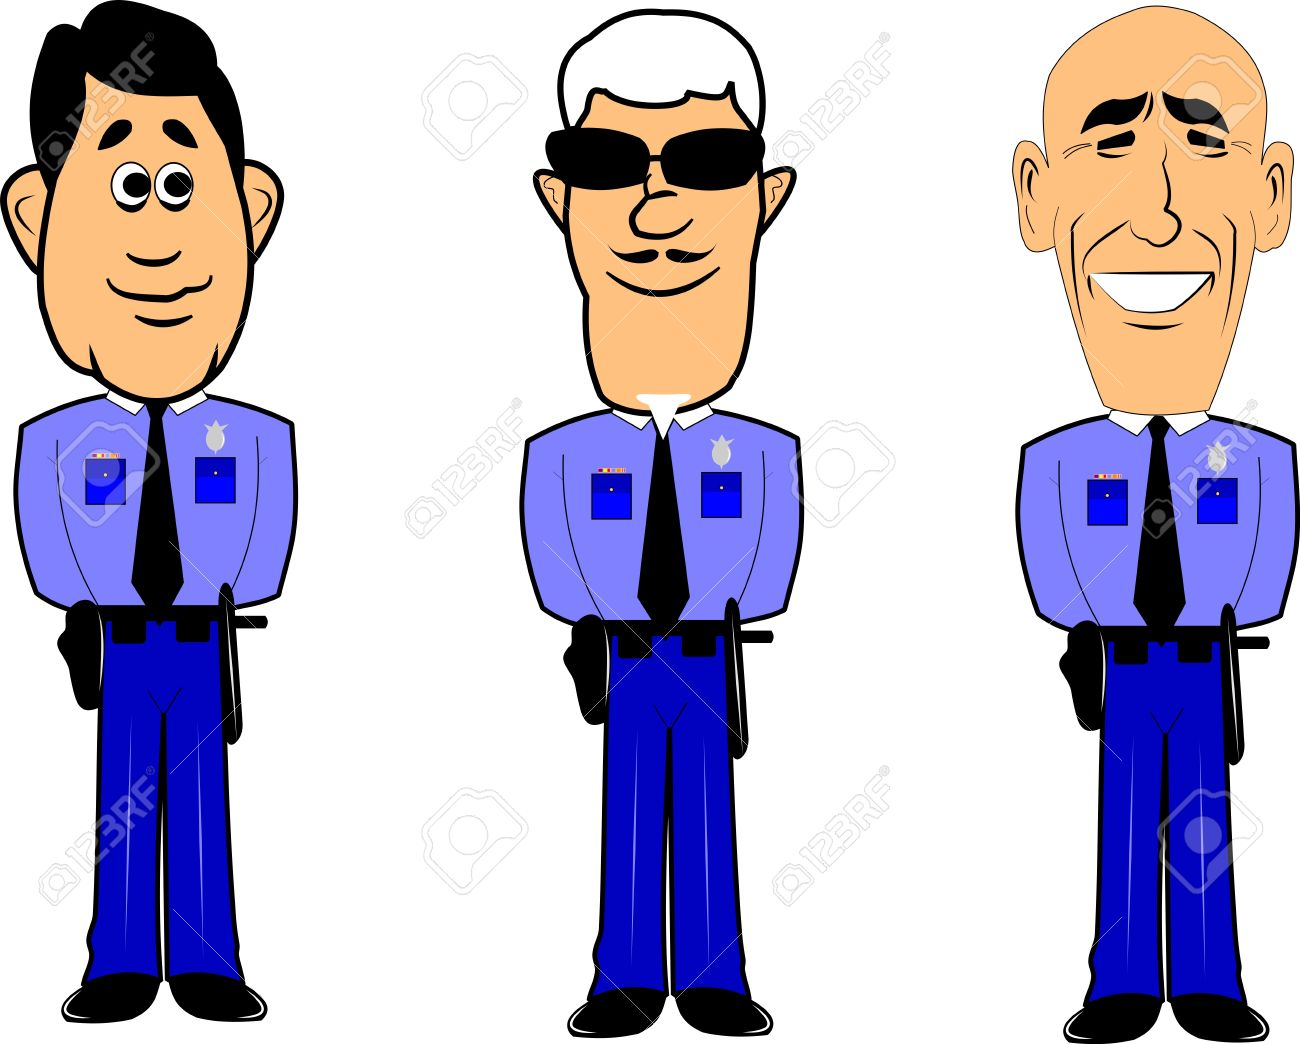 Policemen At Attention Royalty Free Cliparts, Vectors, And Stock.